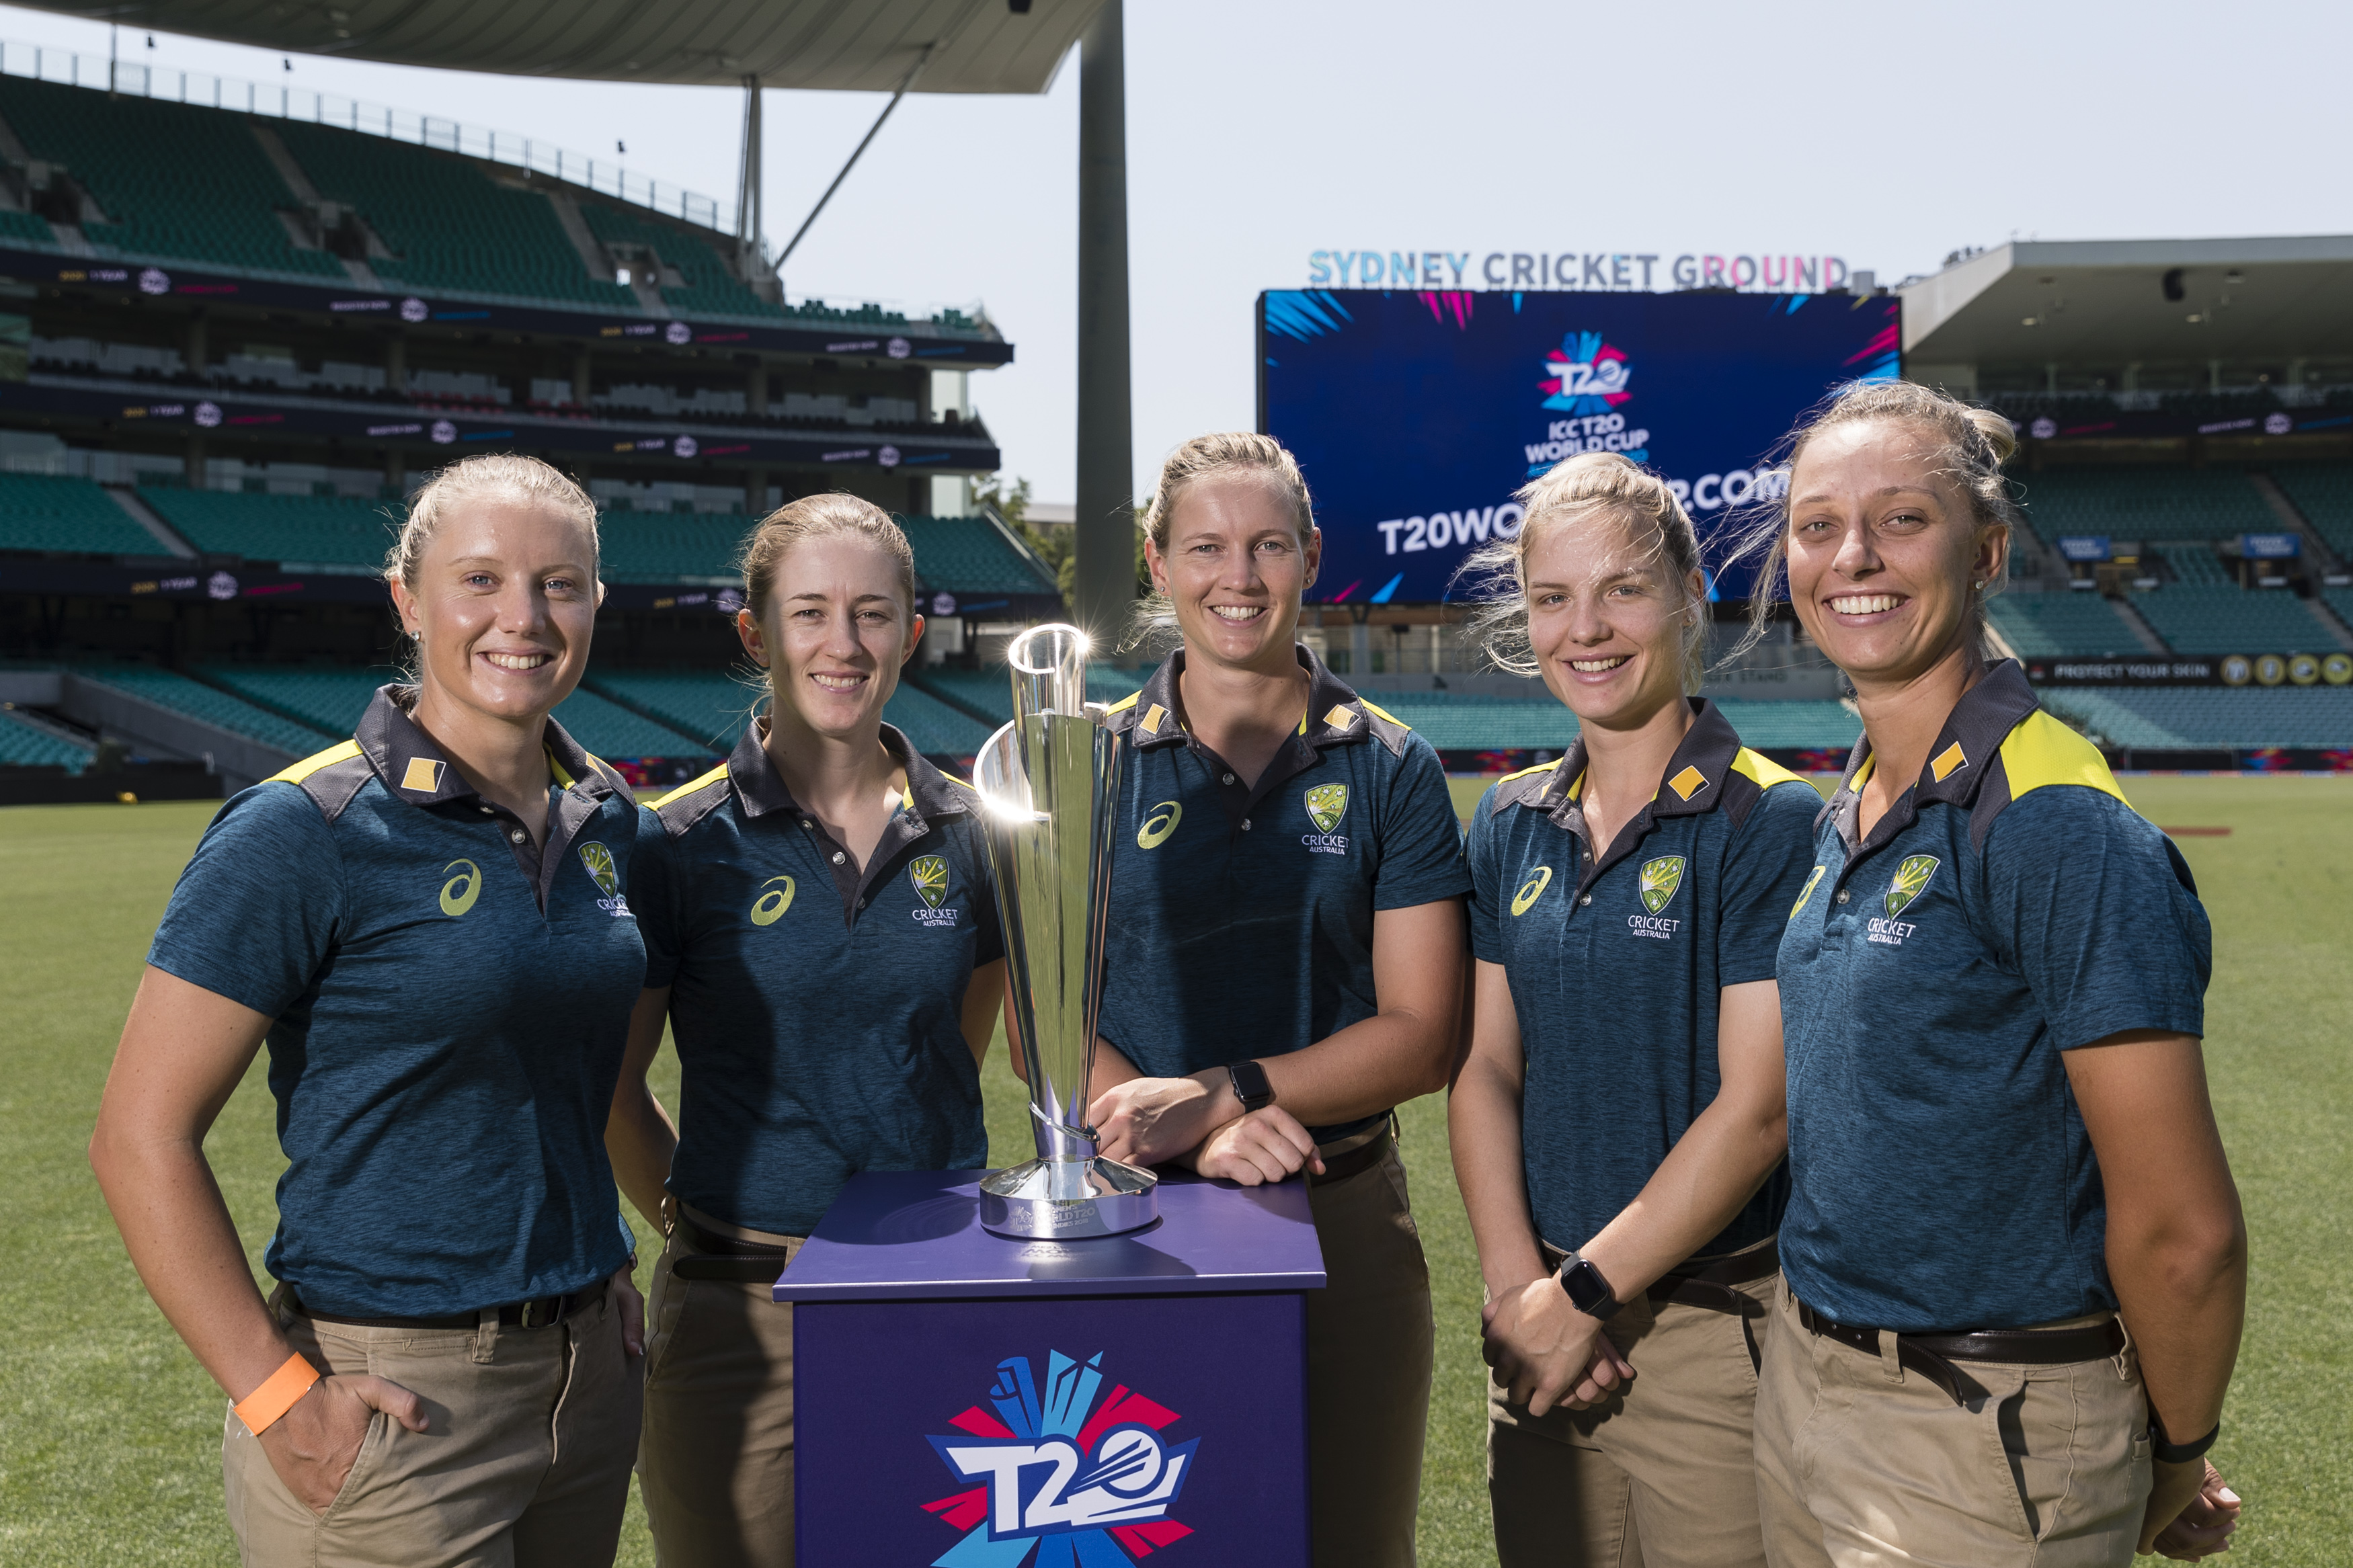 Womens World Cup 2020 Schedule.Tickets To Go On Sale For Icc Women S T20 World Cup 2020 On